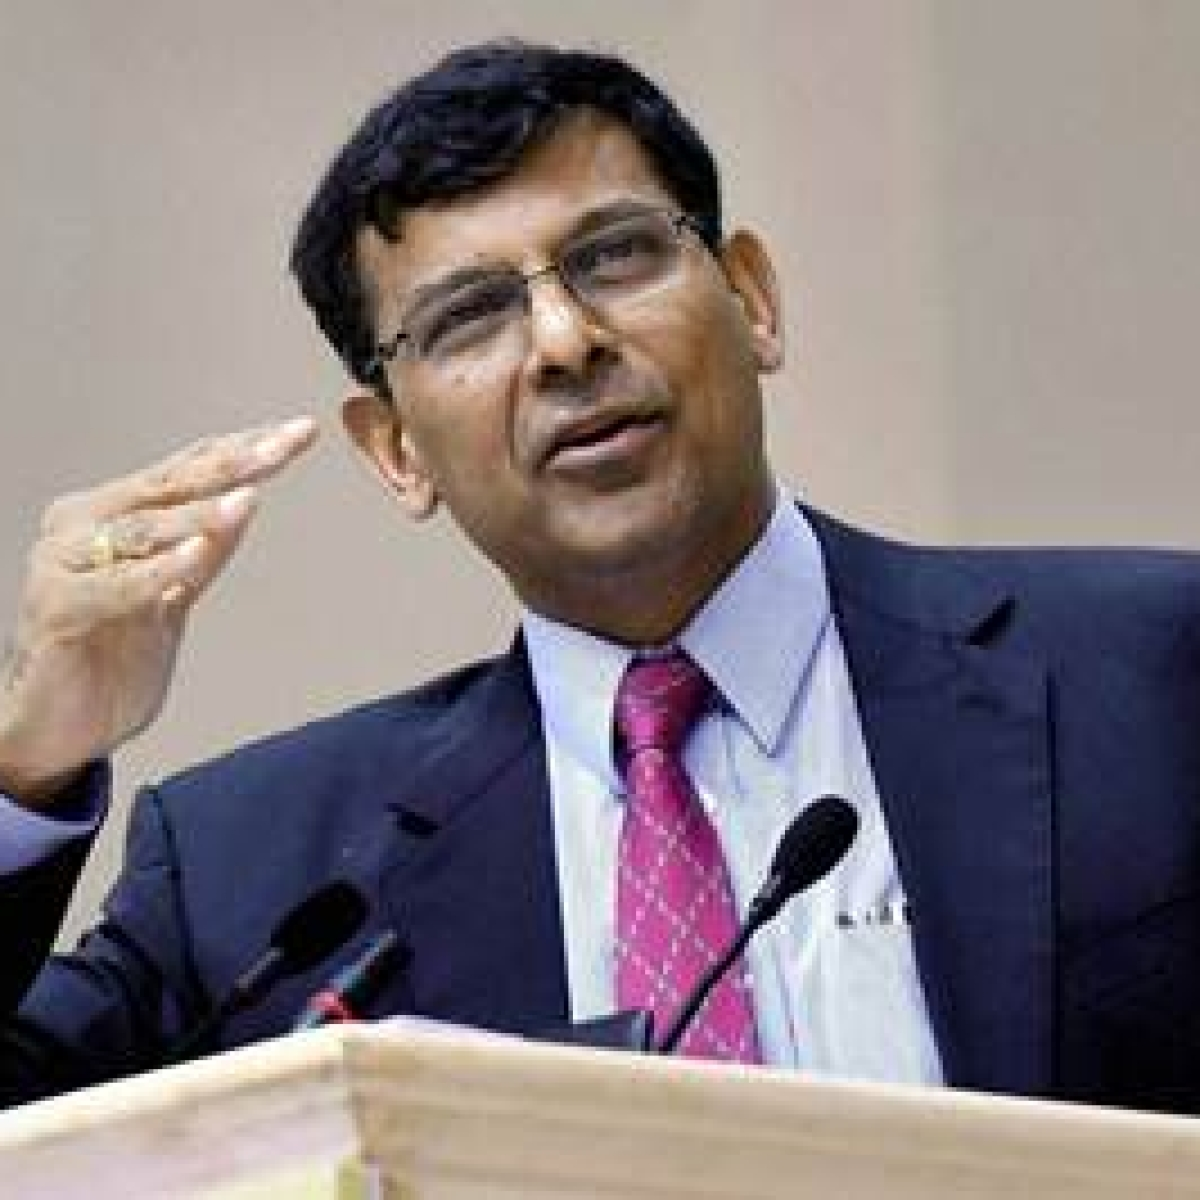 India needs to spend around Rs 650 bn to help the poor and the vulnerable amid COVID-19 crisis: Raghuram Rajan